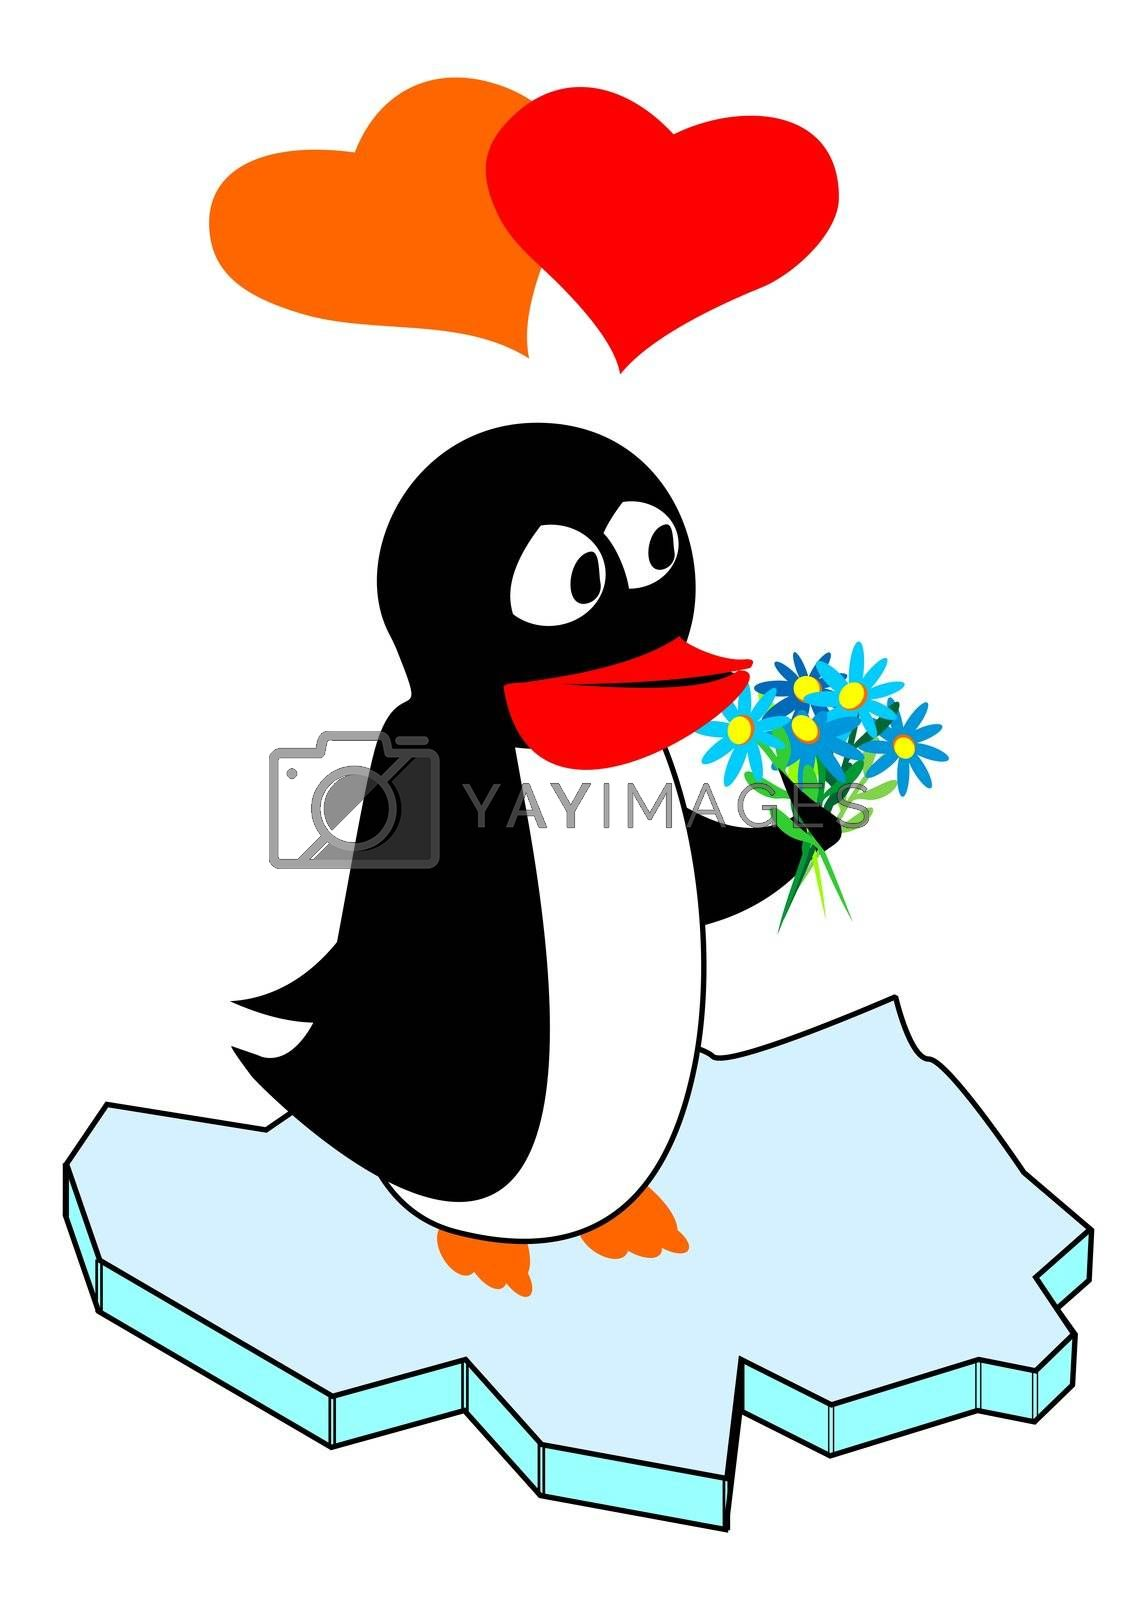 penguin in love, standing with a bunch of flowers on ice, can be used for birthday cards, Valentines and other congratulations